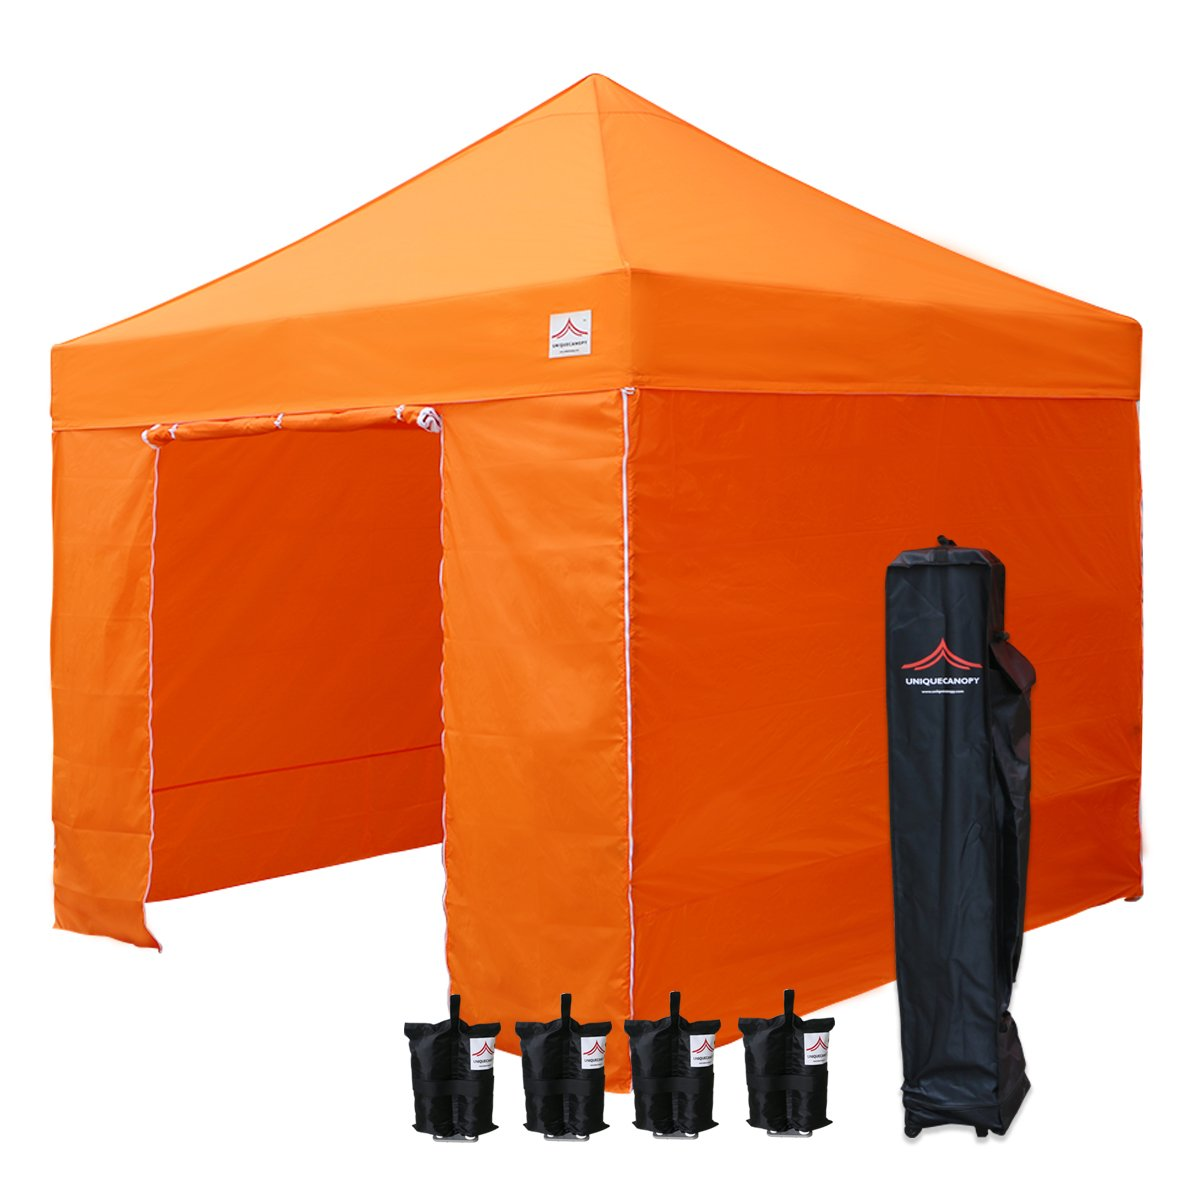 UNIQUECANOPY 10x10 Ez Pop up Canopy Tents for Parties Outdoor Portable Instant Folded Commercial Popup Shelter, with 4 Zippered Side Walls and Wheeled Carrying Bag Bonus 4 Sandbags Orange